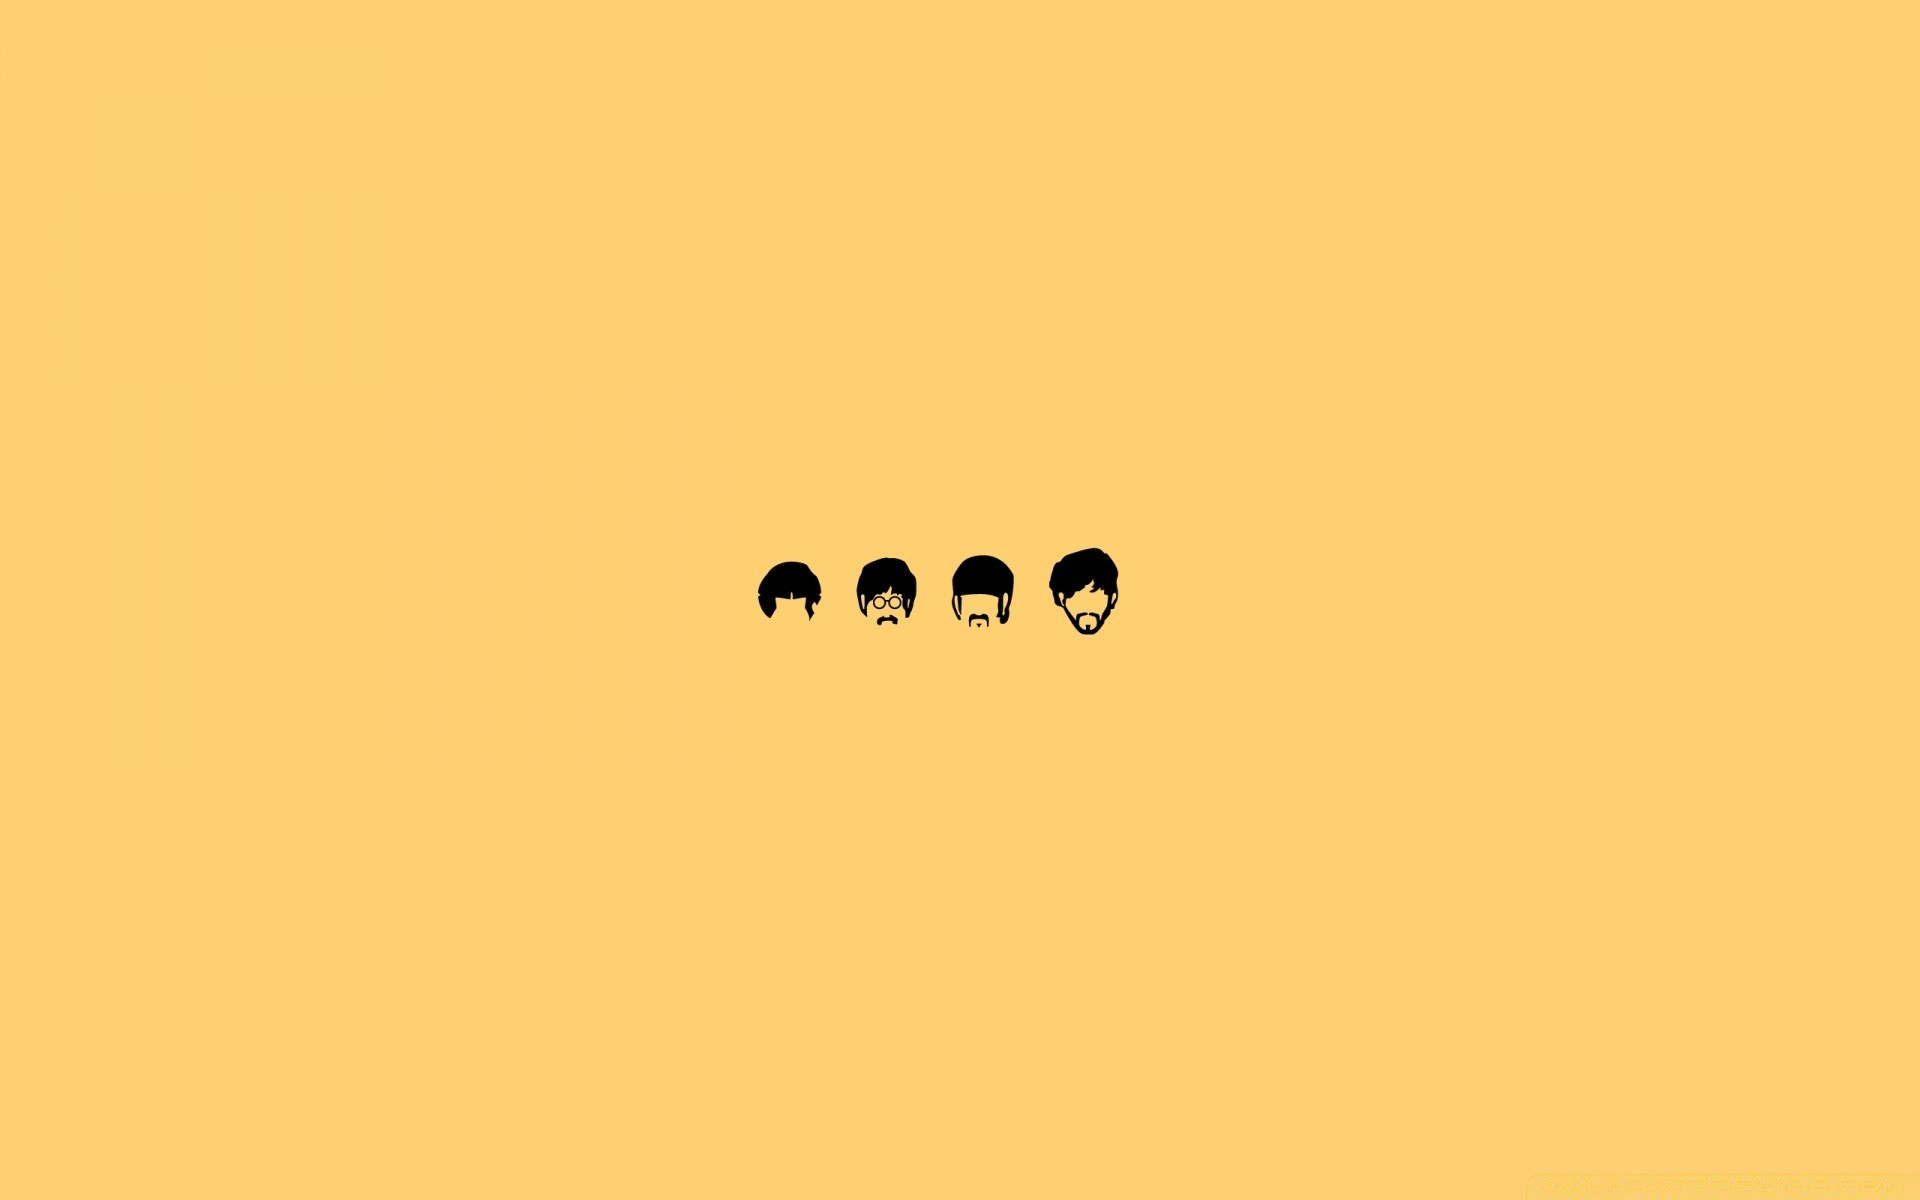 The Beatles Cartoon IPhone Wallpapers For Free